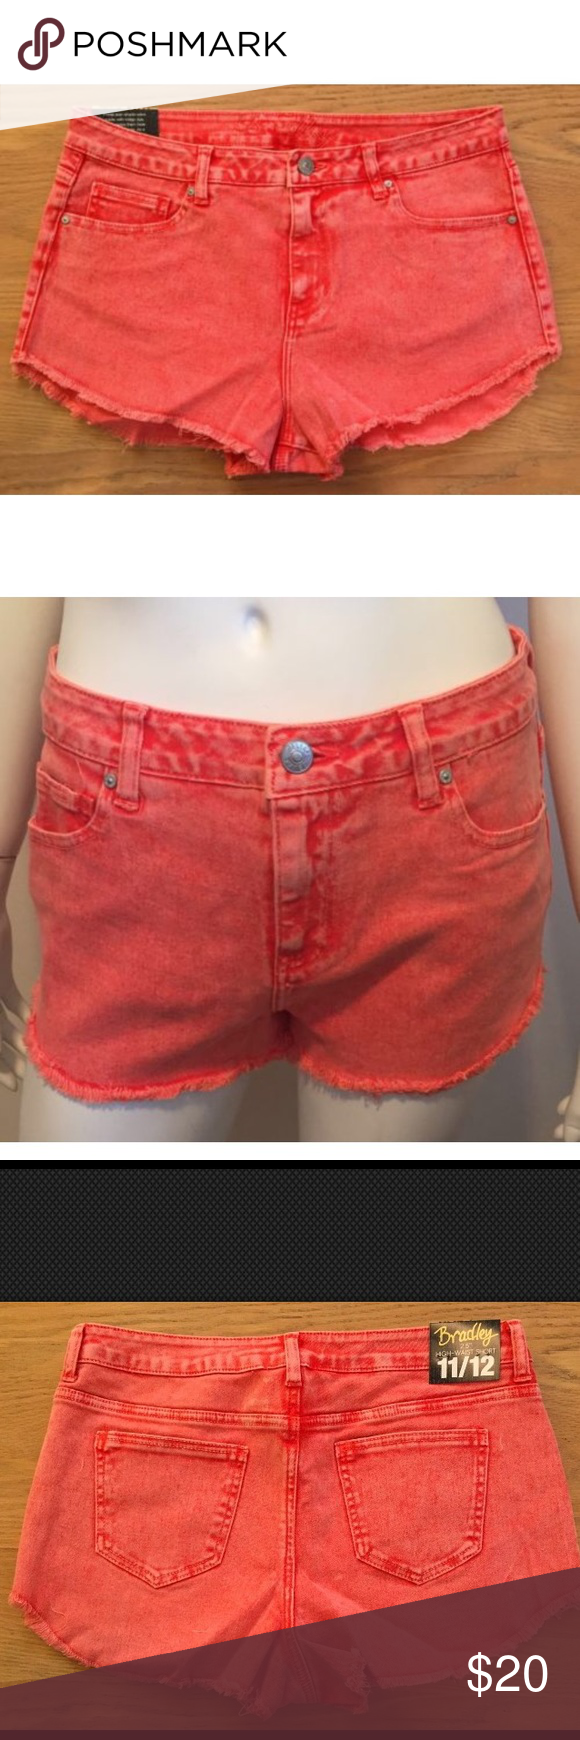 NEW Delias Red Jean Shorts High Waist Size 11/12 NWT | D, Abs and ...